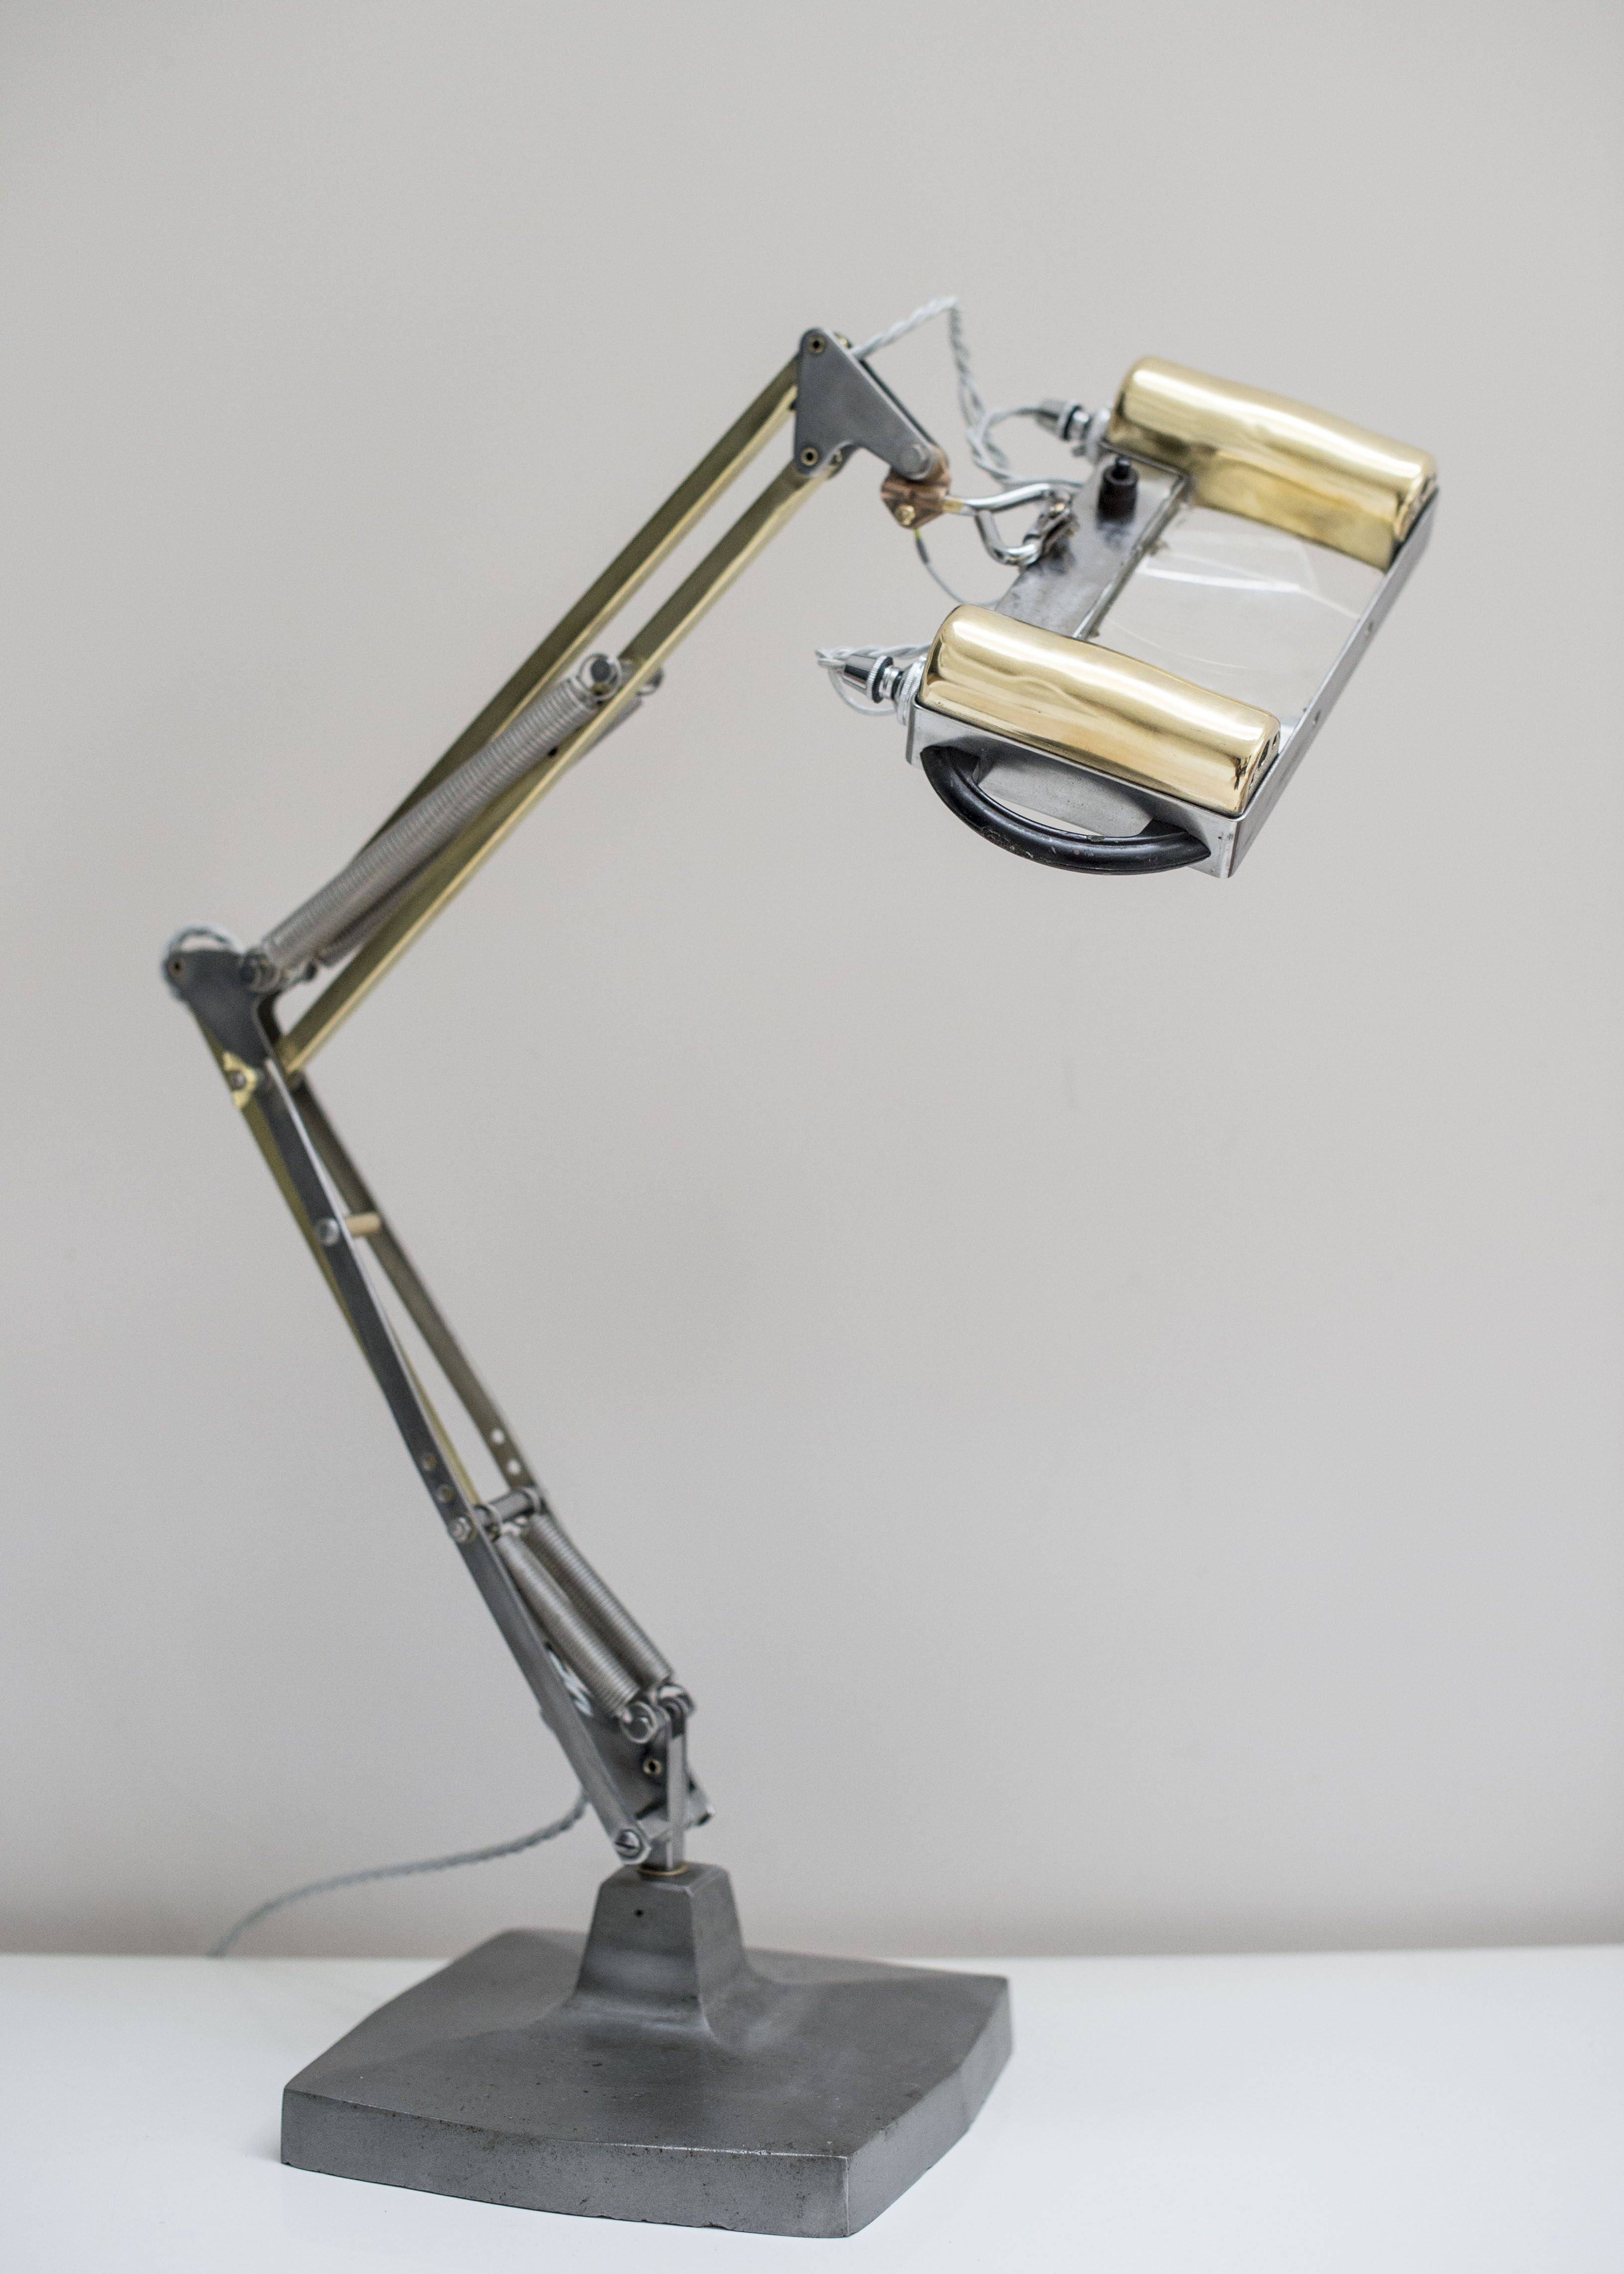 anglepoise lighting. super rare 1431 herbert terry magnifying anglepoise lamp early magnifier version with side light illumination stripped and polished to a high standard lighting